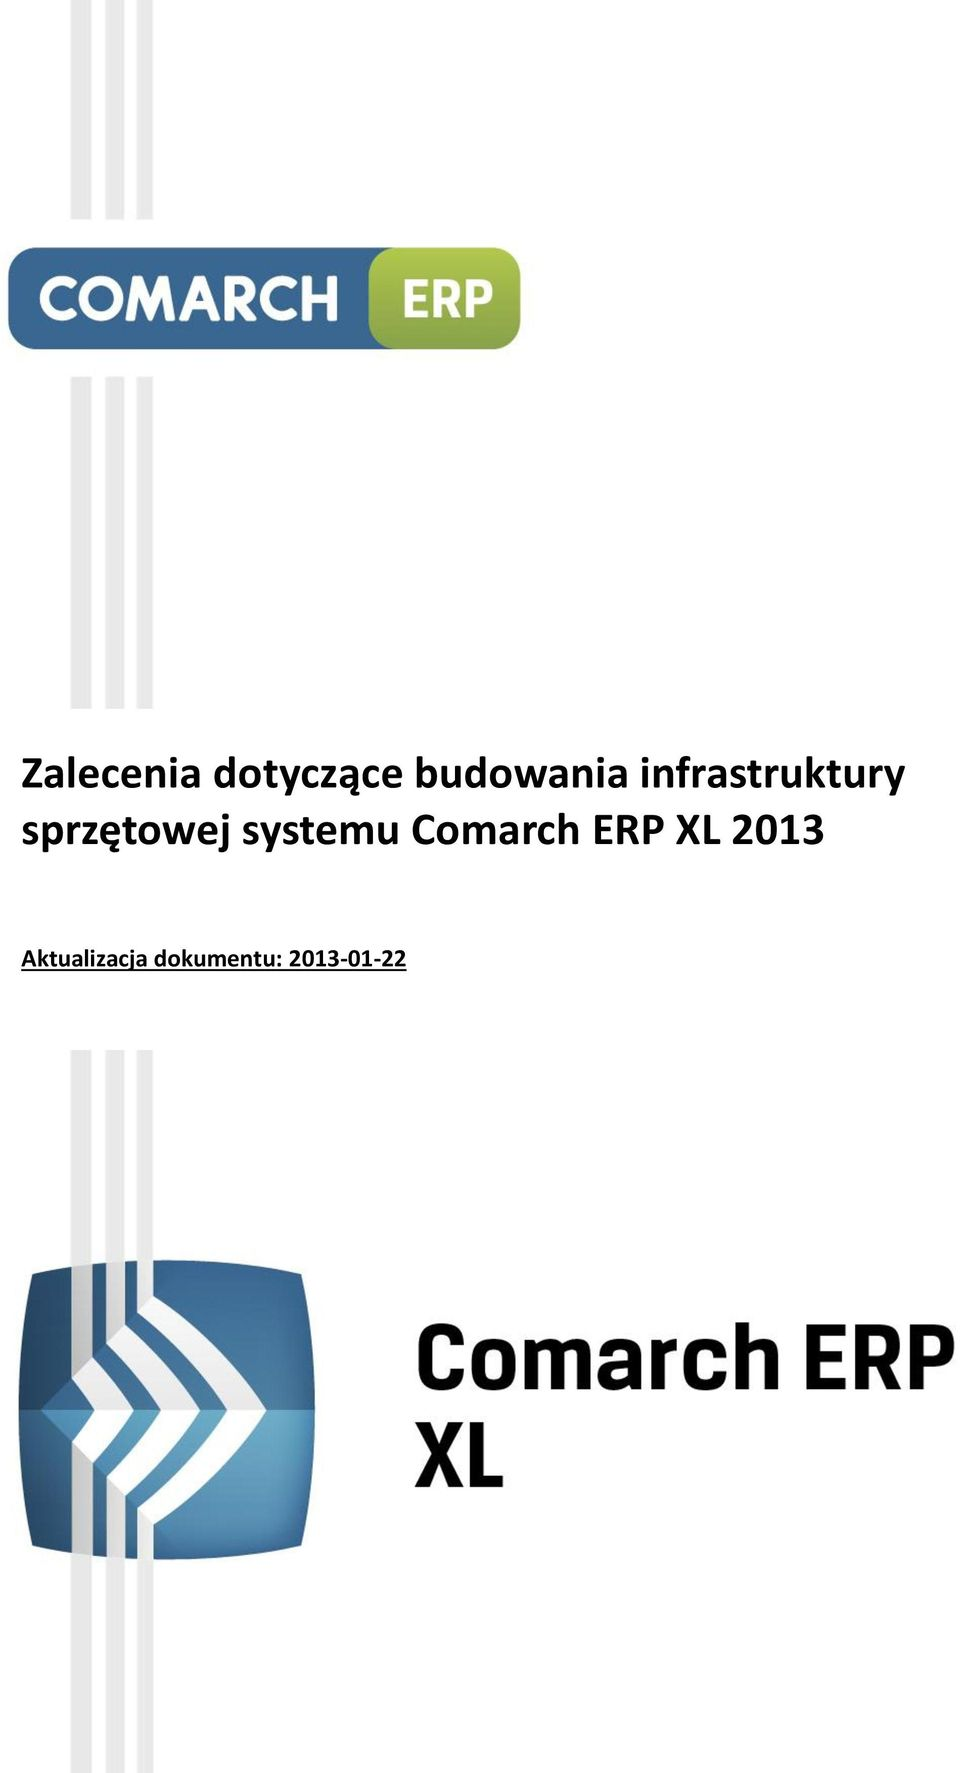 systemu Comarch ERP XL 2013